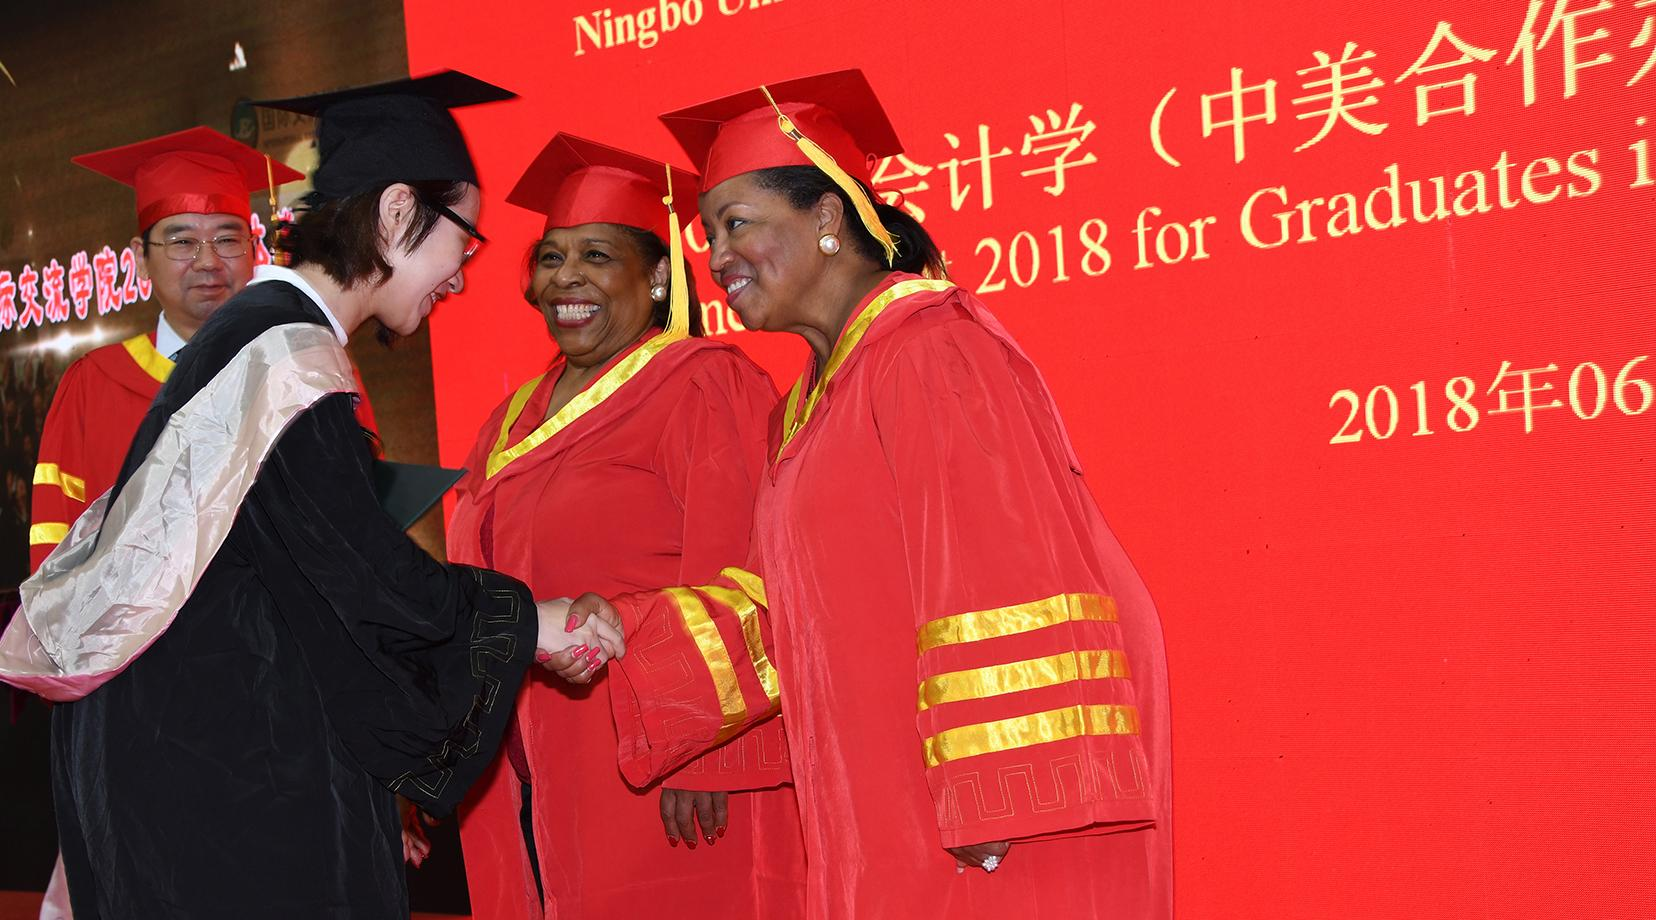 <p>Dr. Wilma Mishoe and Dr. Devona Williams congratulate a graduate during the Commencement ceremony.</p>